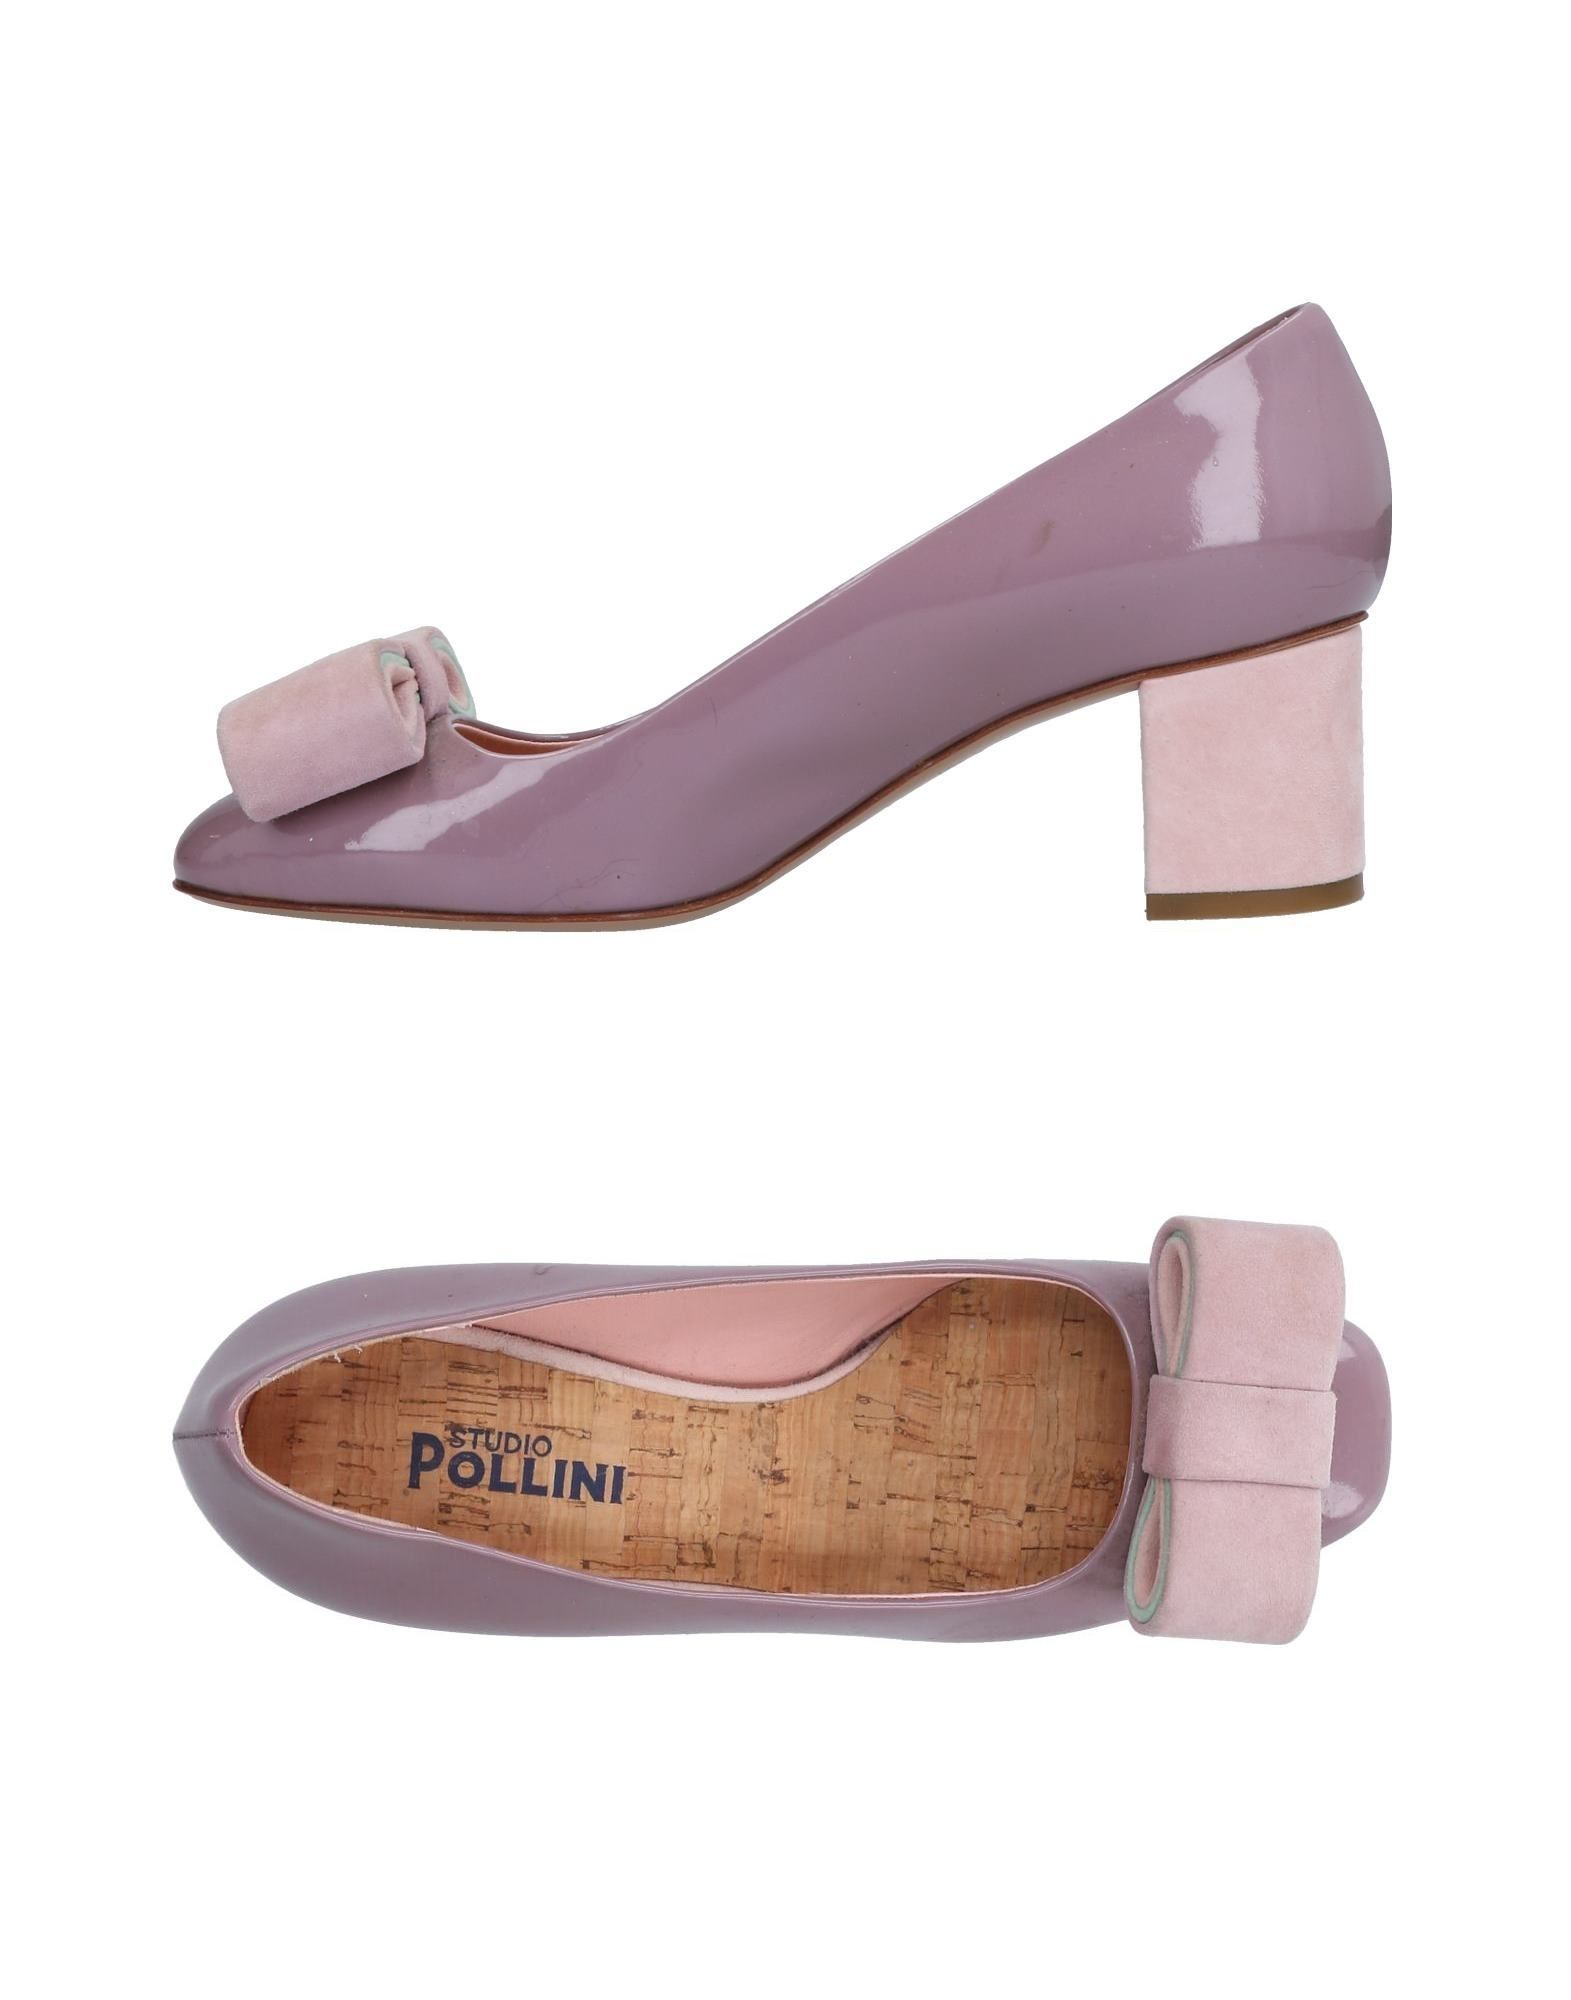 Gut Pollini um billige Schuhe zu tragenStudio Pollini Gut Pumps Damen  11503970PS 459707